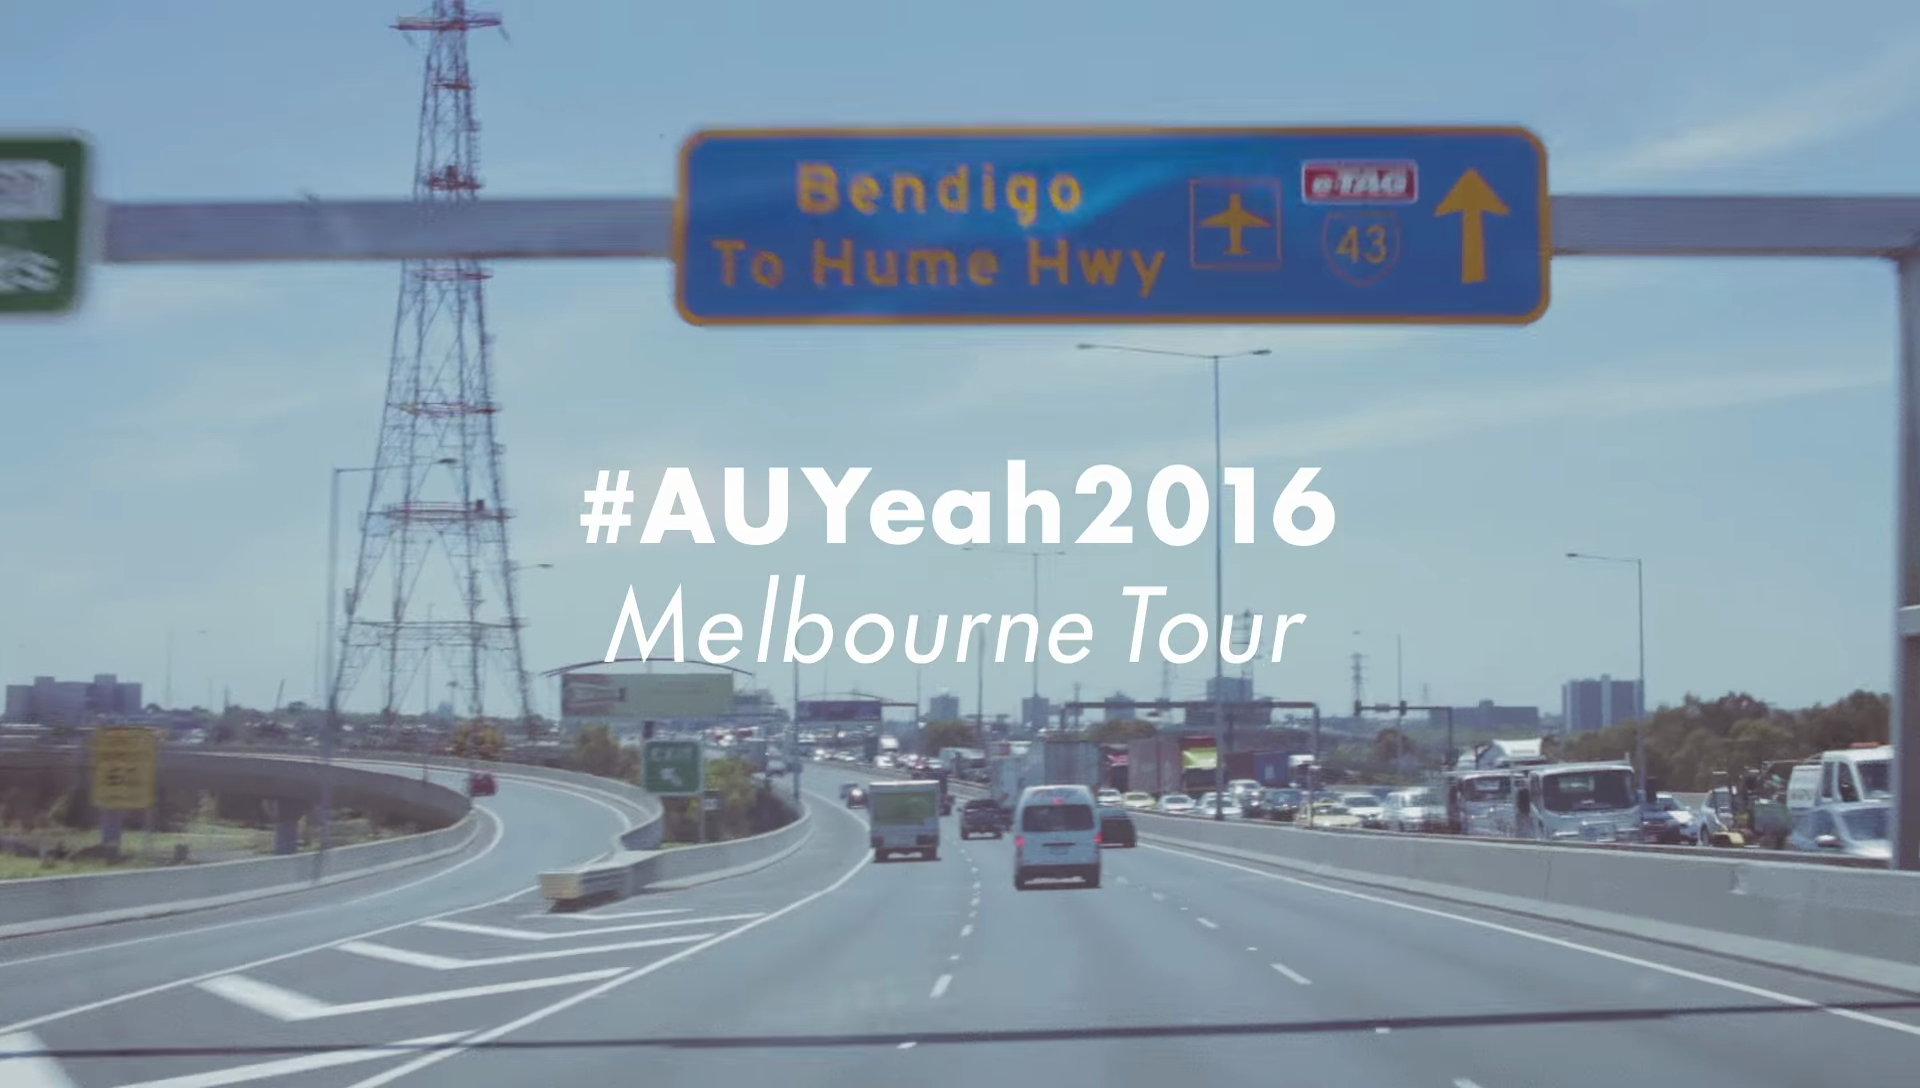 #AUYeah 2016 Tour Video